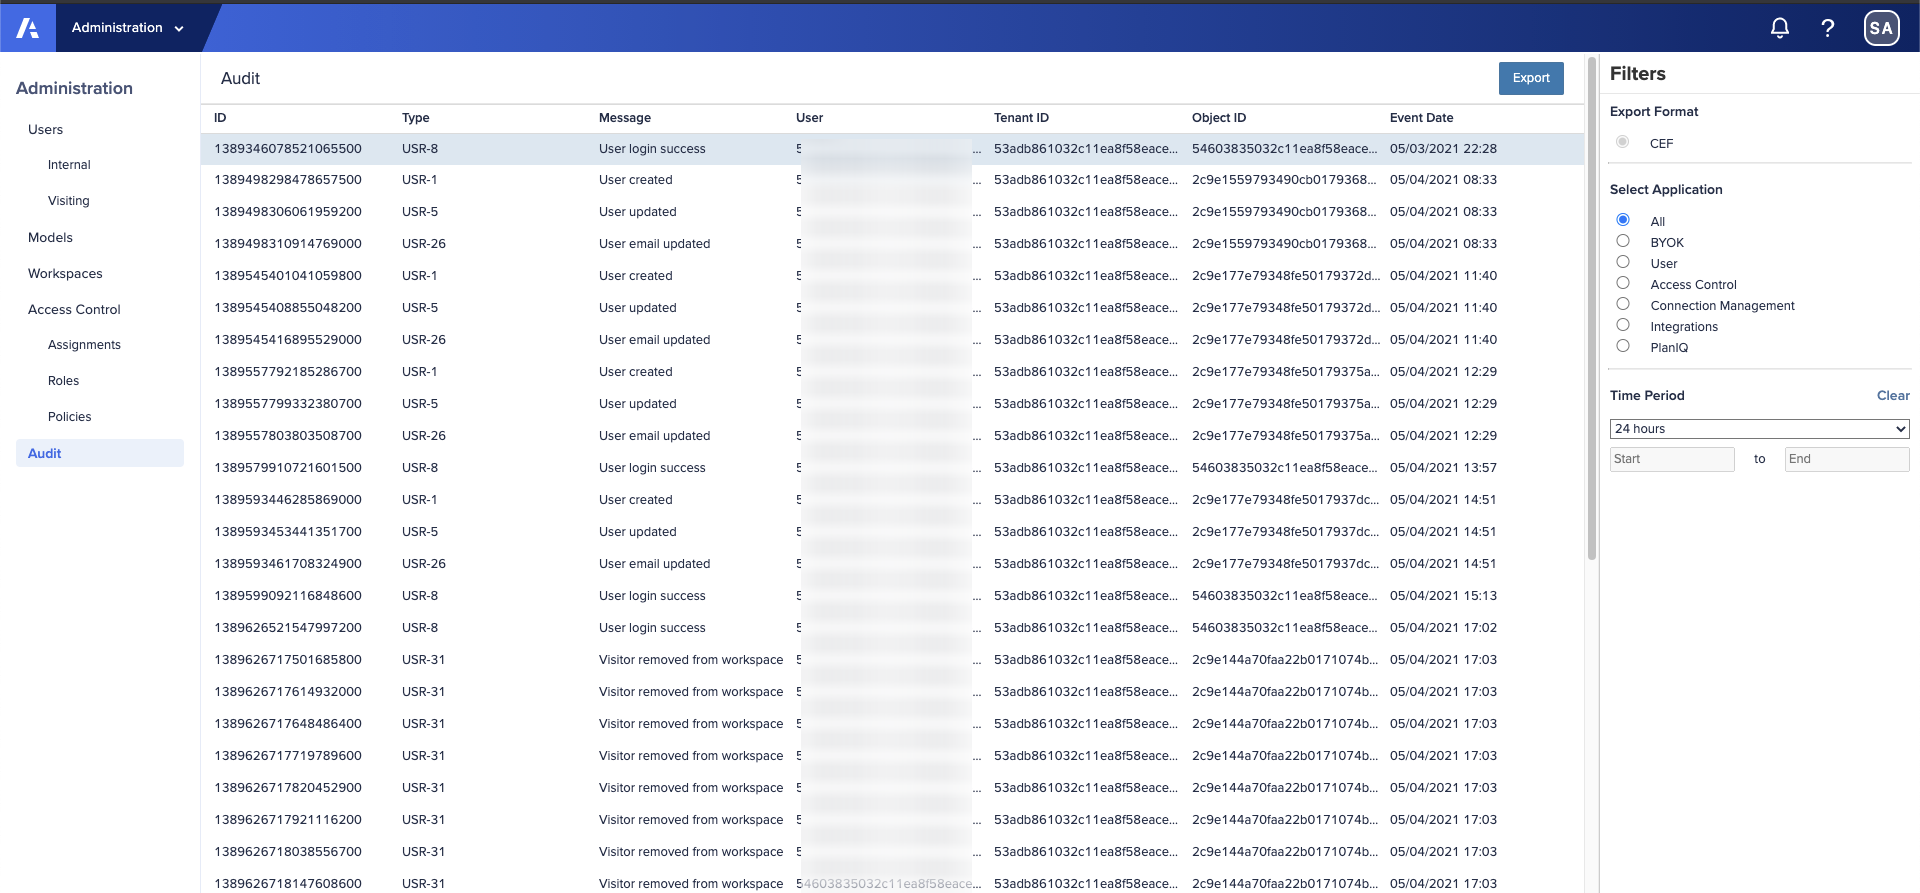 Anaplan Audit. The filter is set to show all events. The User column data is obfuscated.